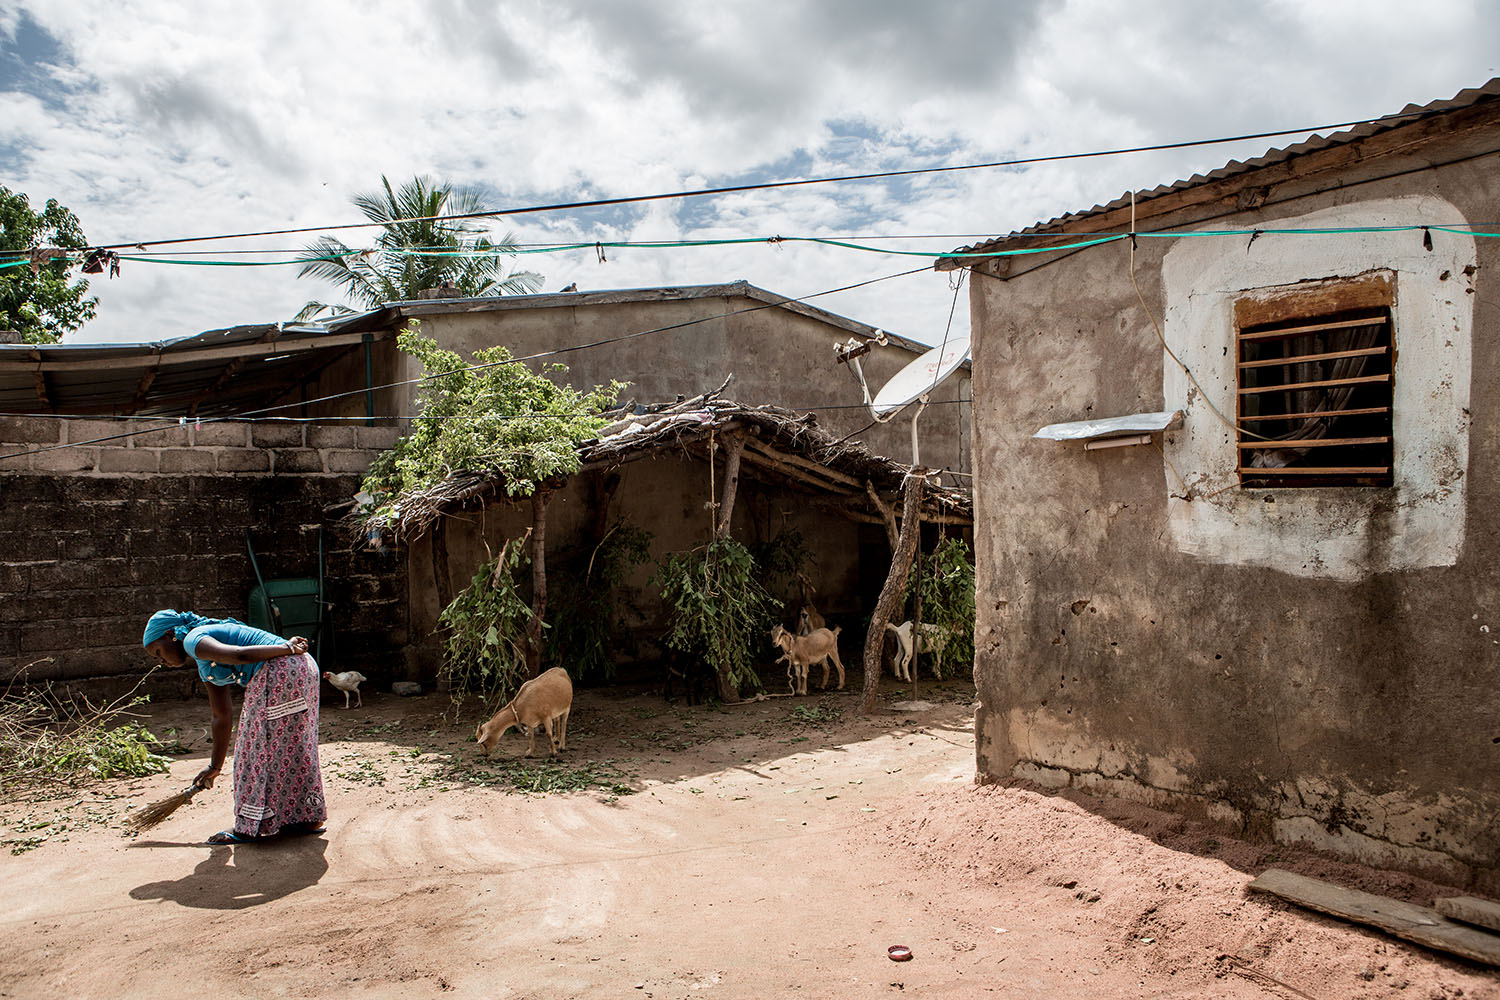 """Waraba Doumbia, 16 years (released) sweeps the family's homestead, one of many chores she is expected to complete during her day. """"When I get up in the morning and watch my brothers and sisters getting ready for school, I feel very sad that I no longe"""